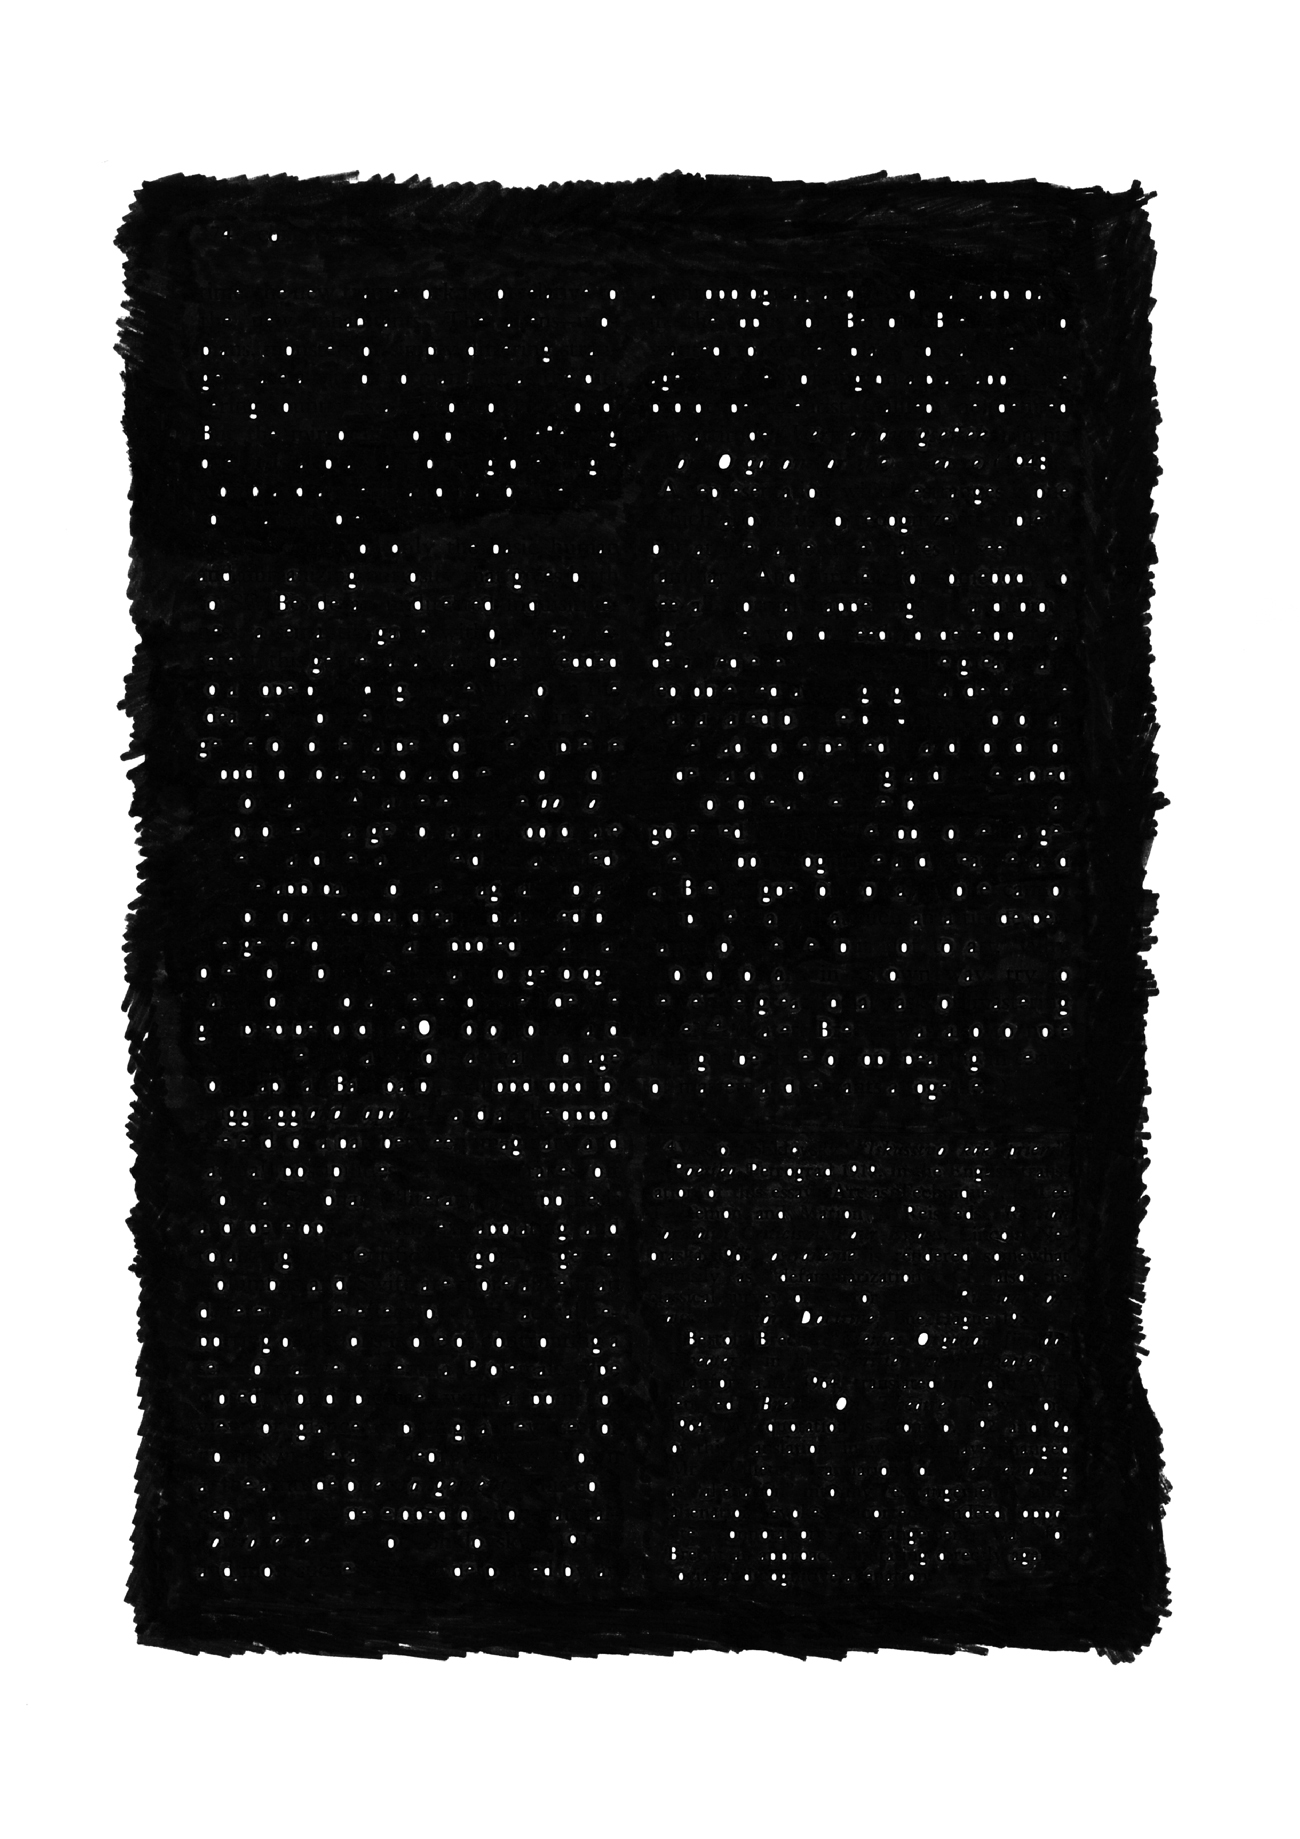 page of text with all text area blacked out except holes in letters